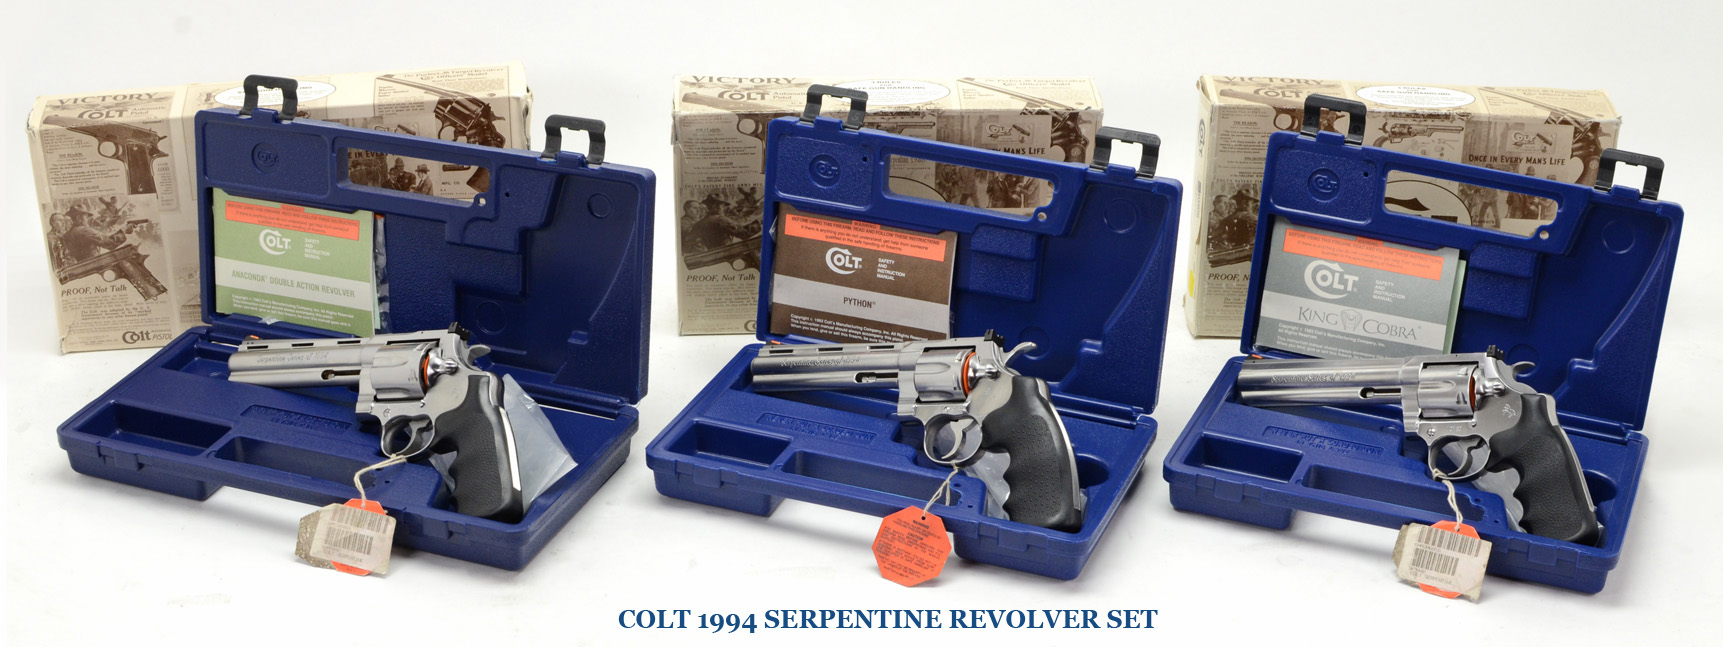 Colt 1994 Serpentine Revolver Set